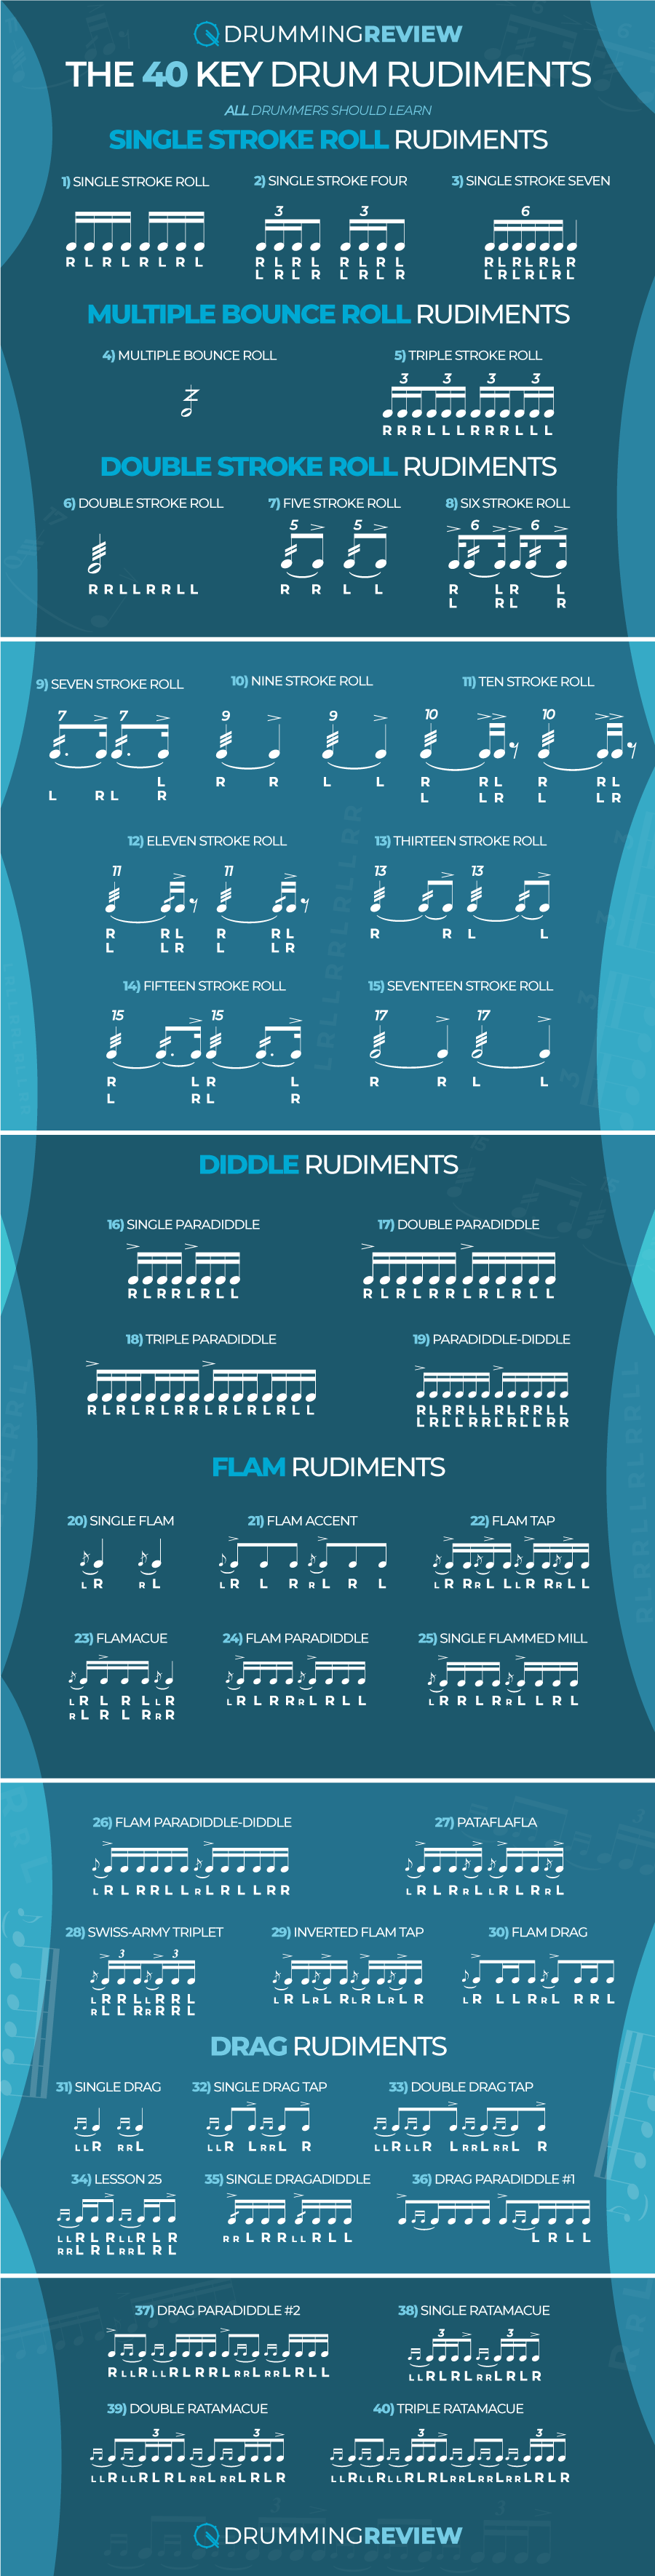 40 Drum Rudiments Infographic